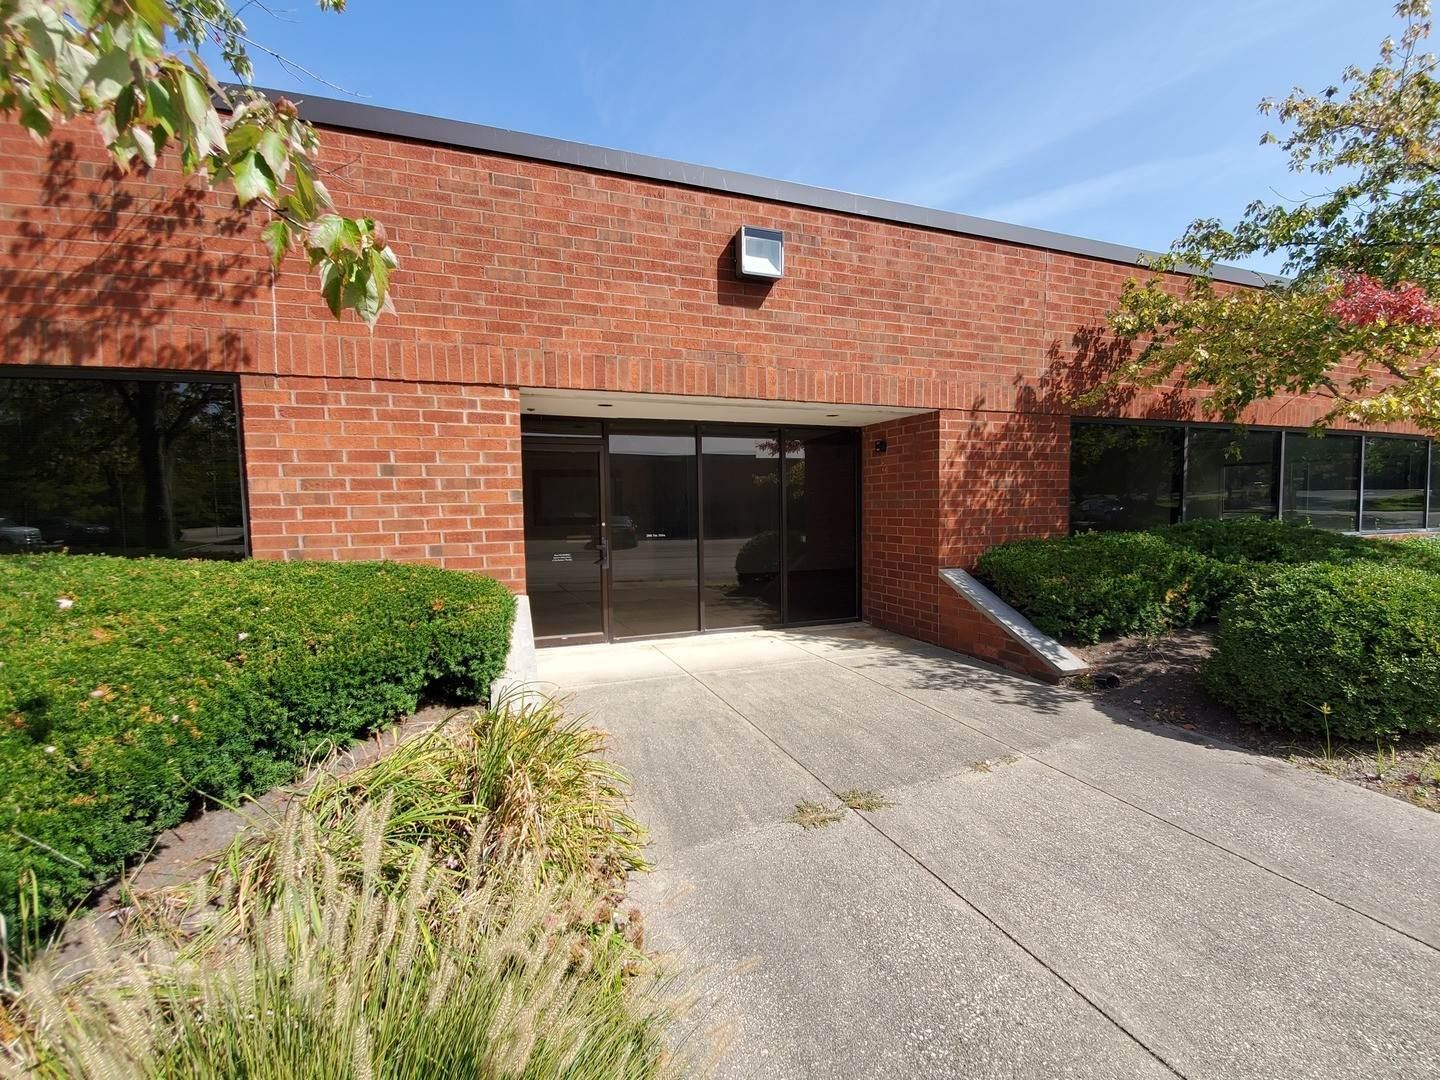 Commercial for Sale at 2001 Fox Drive Champaign, Illinois 61820 United States